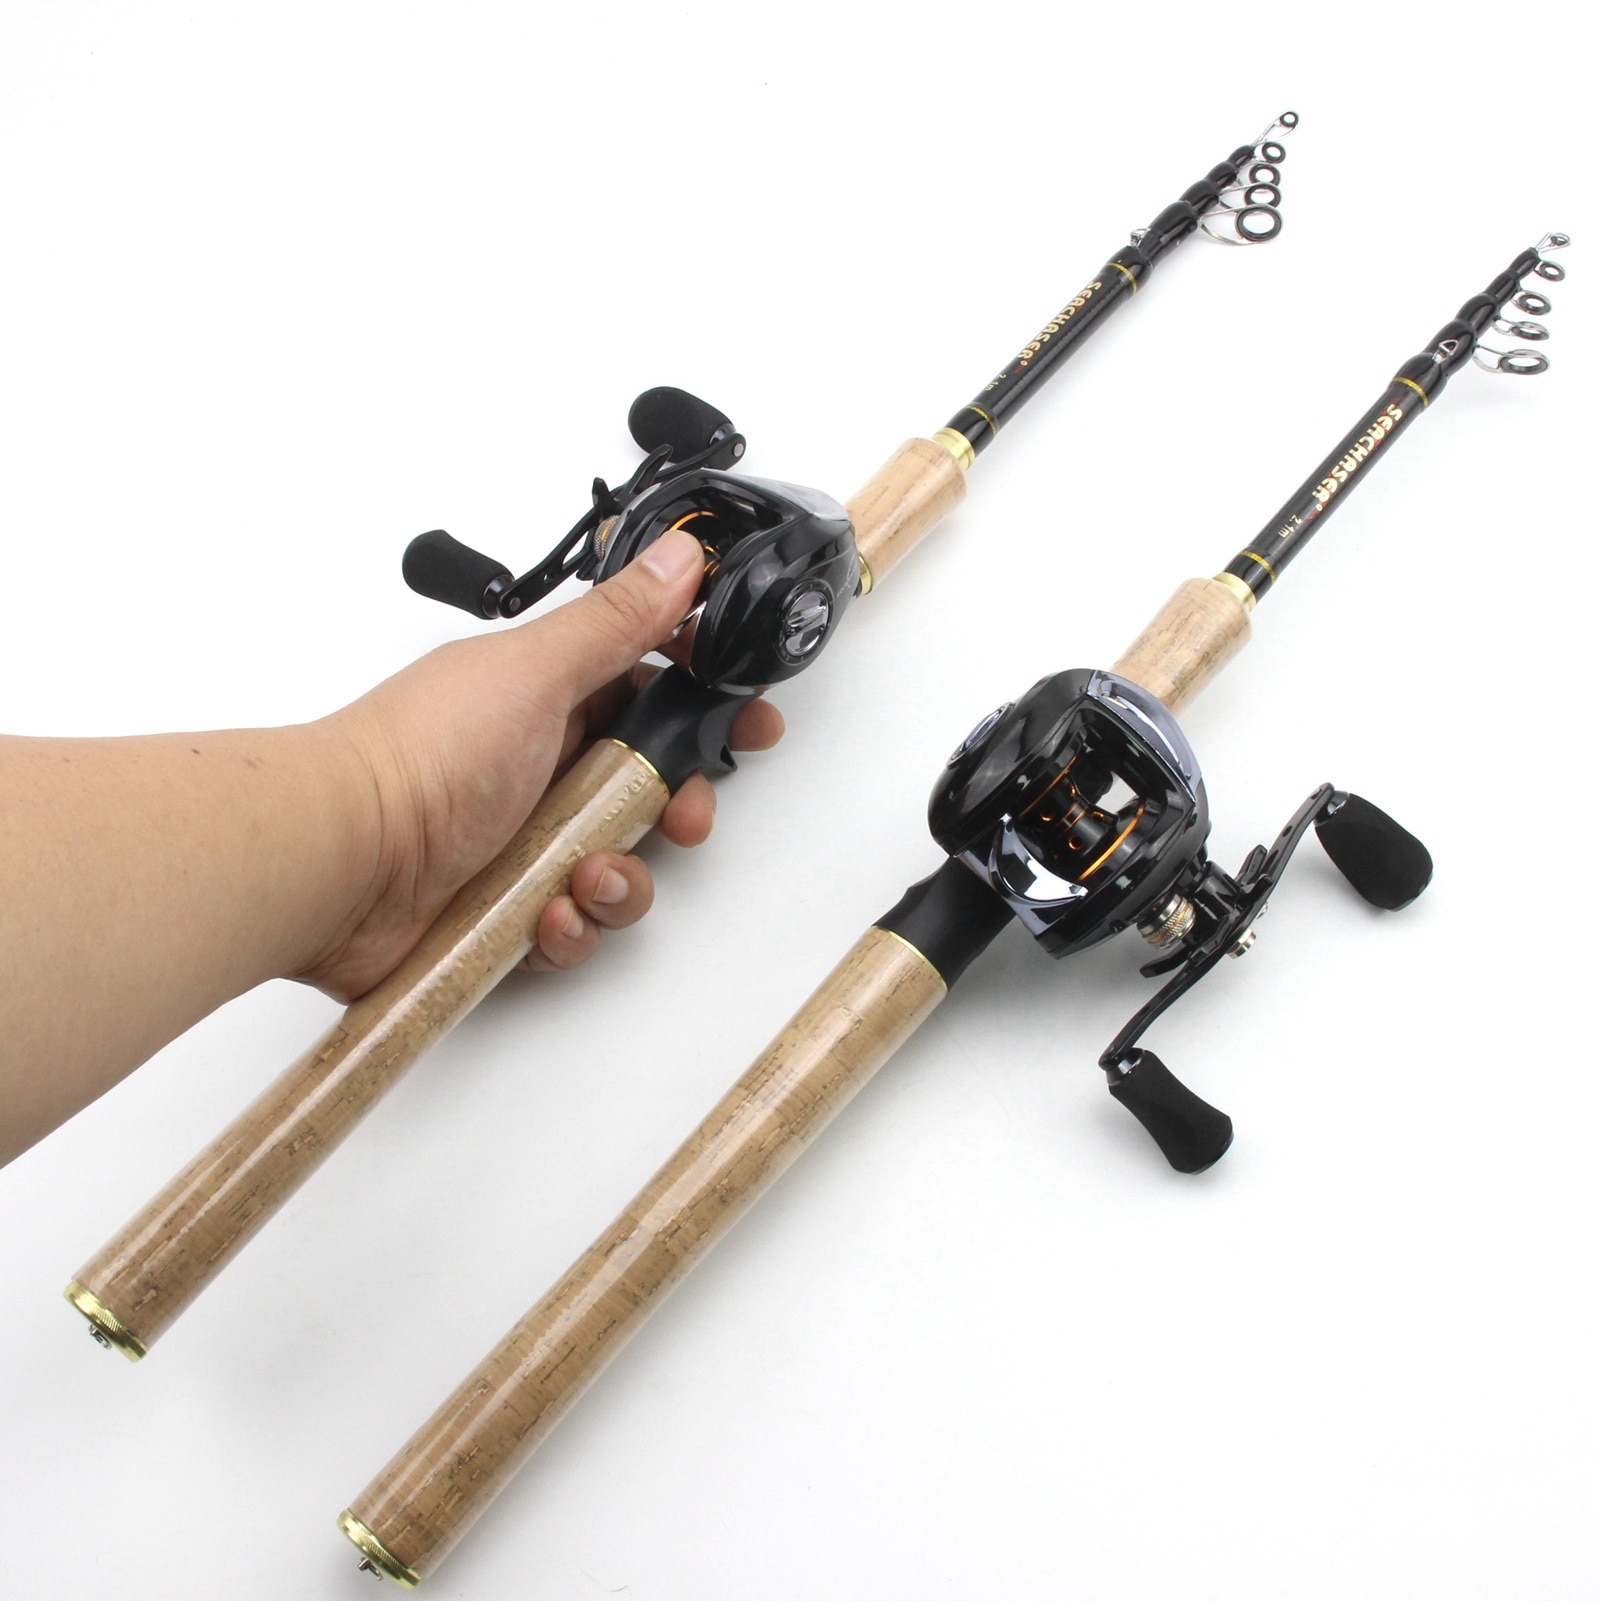 AOYA Fishing Rod and Reel Combo Telescopic Portable Carbon Fiber Casting Feeder Ultralight Pole and 18+1BB Baitcasting Reel Set enlarge